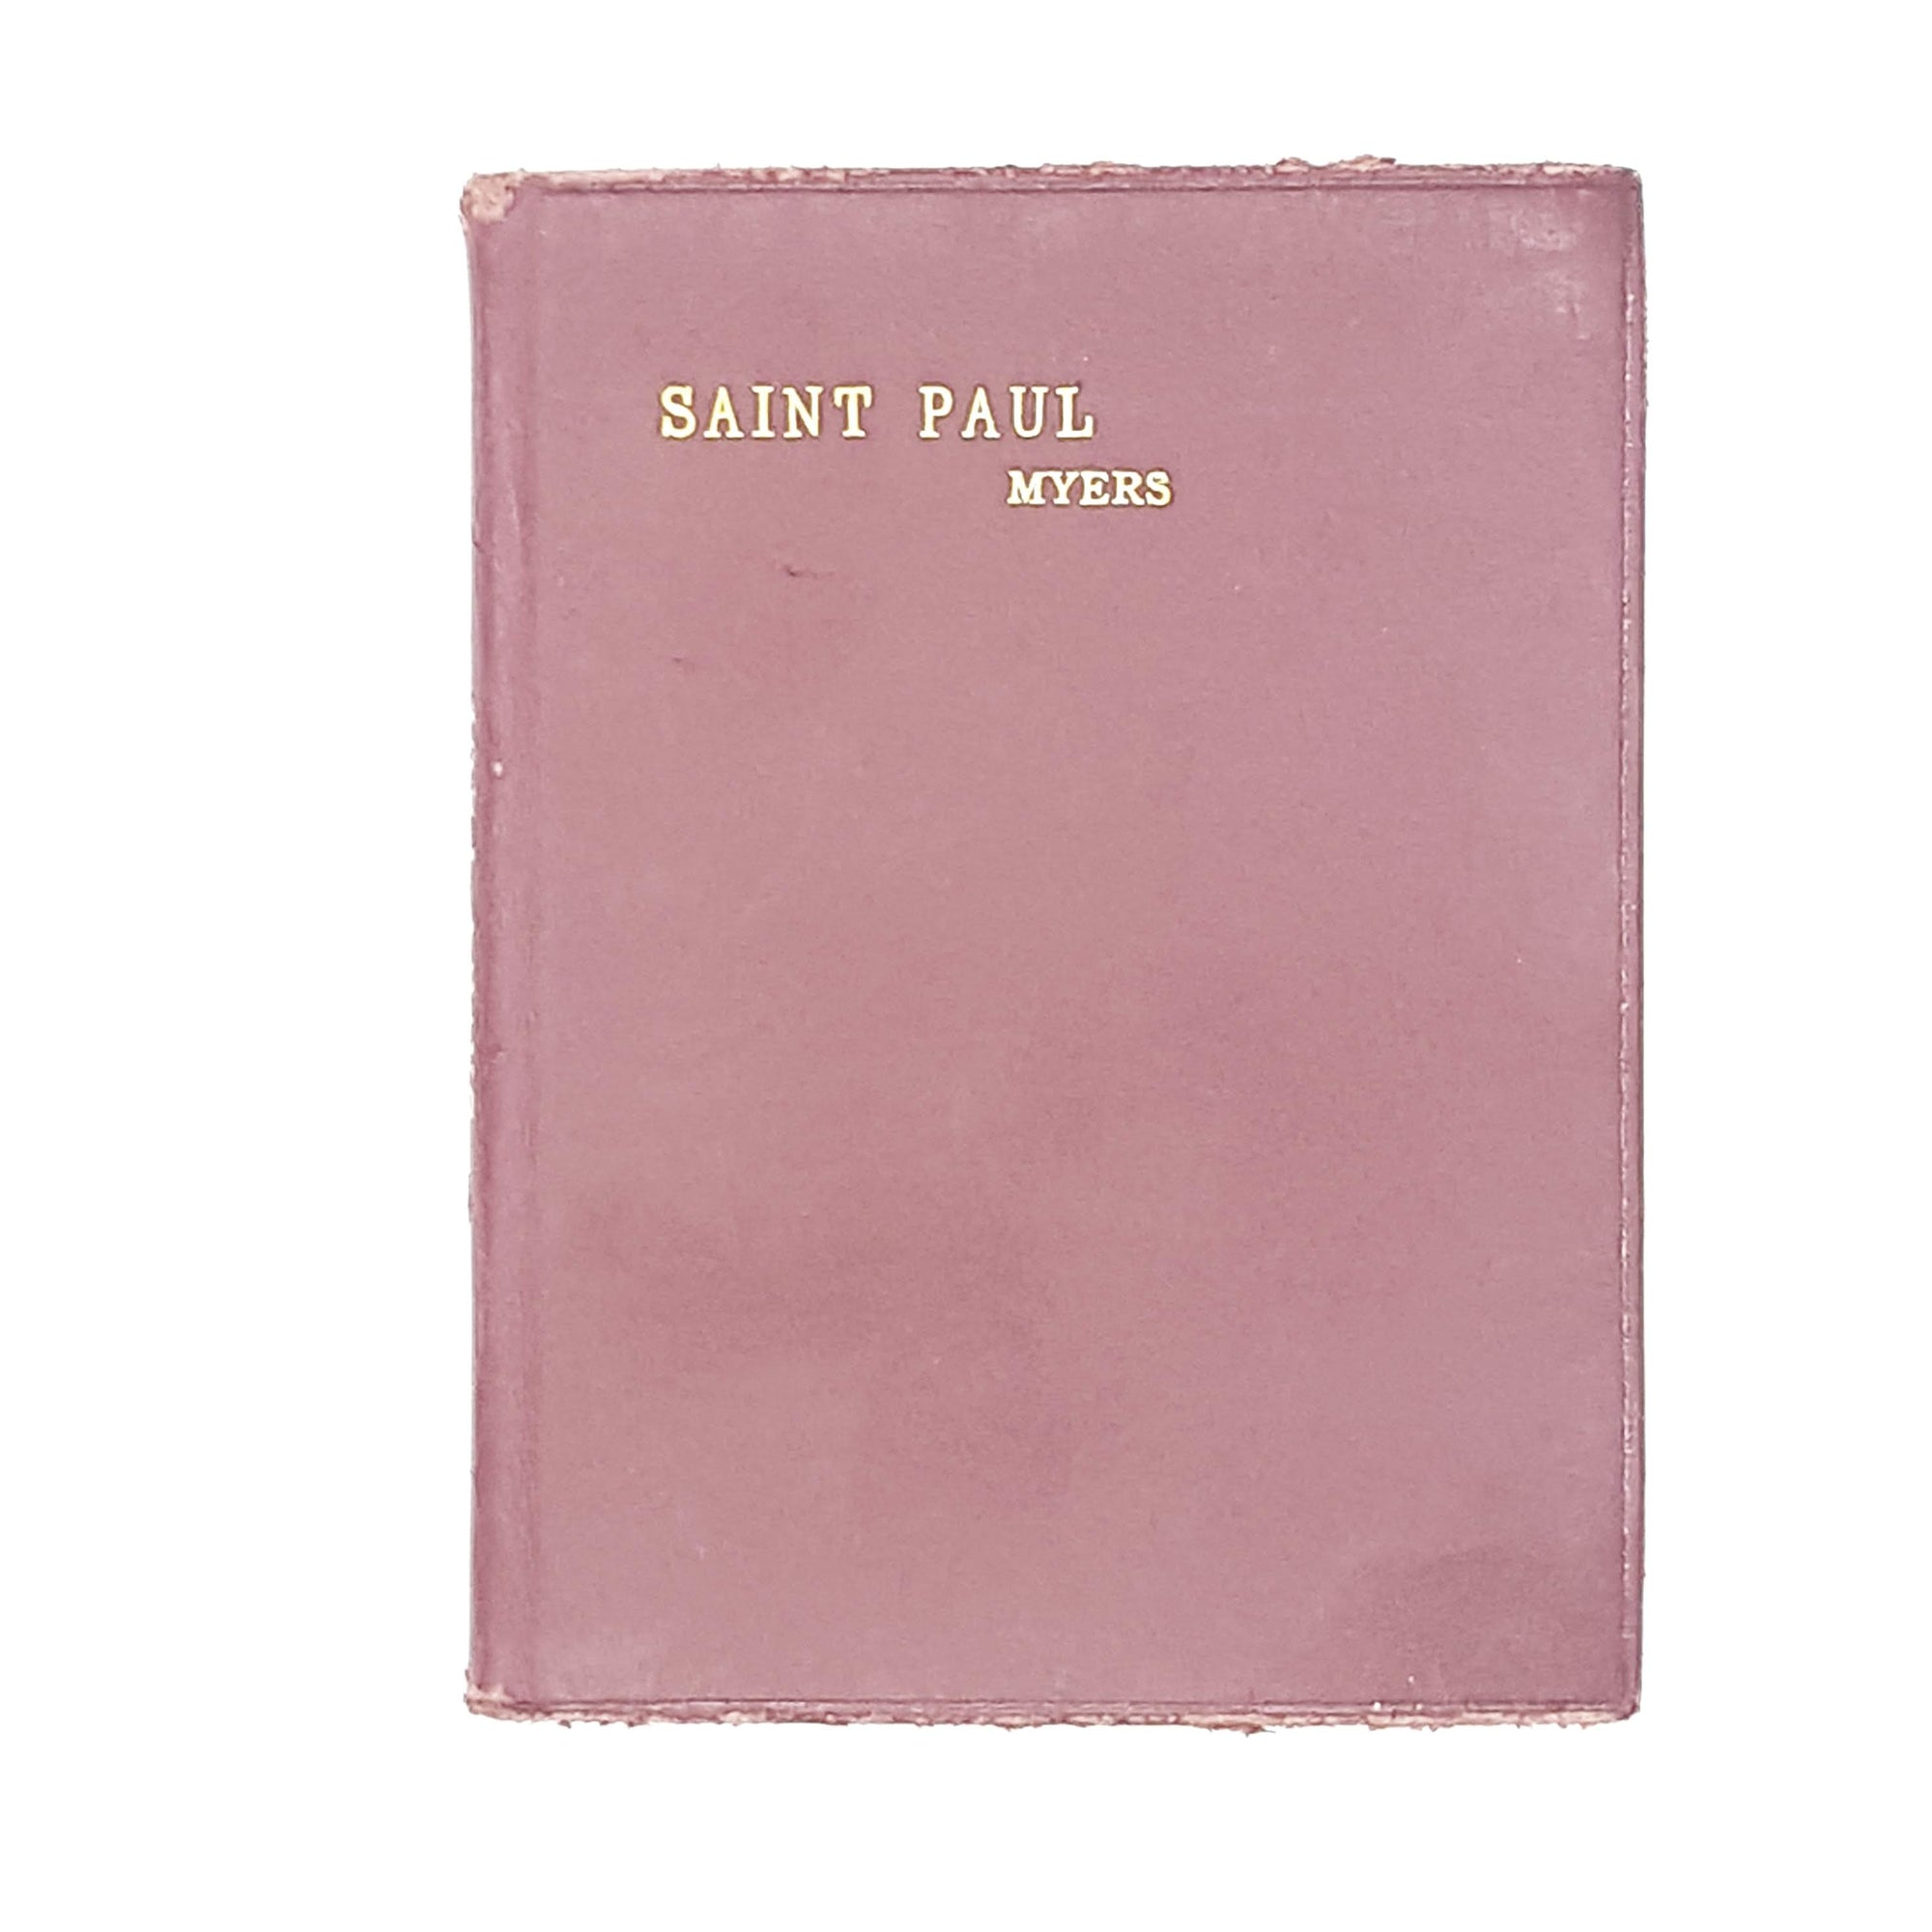 Saint Paul by Frederick W. H. Myers